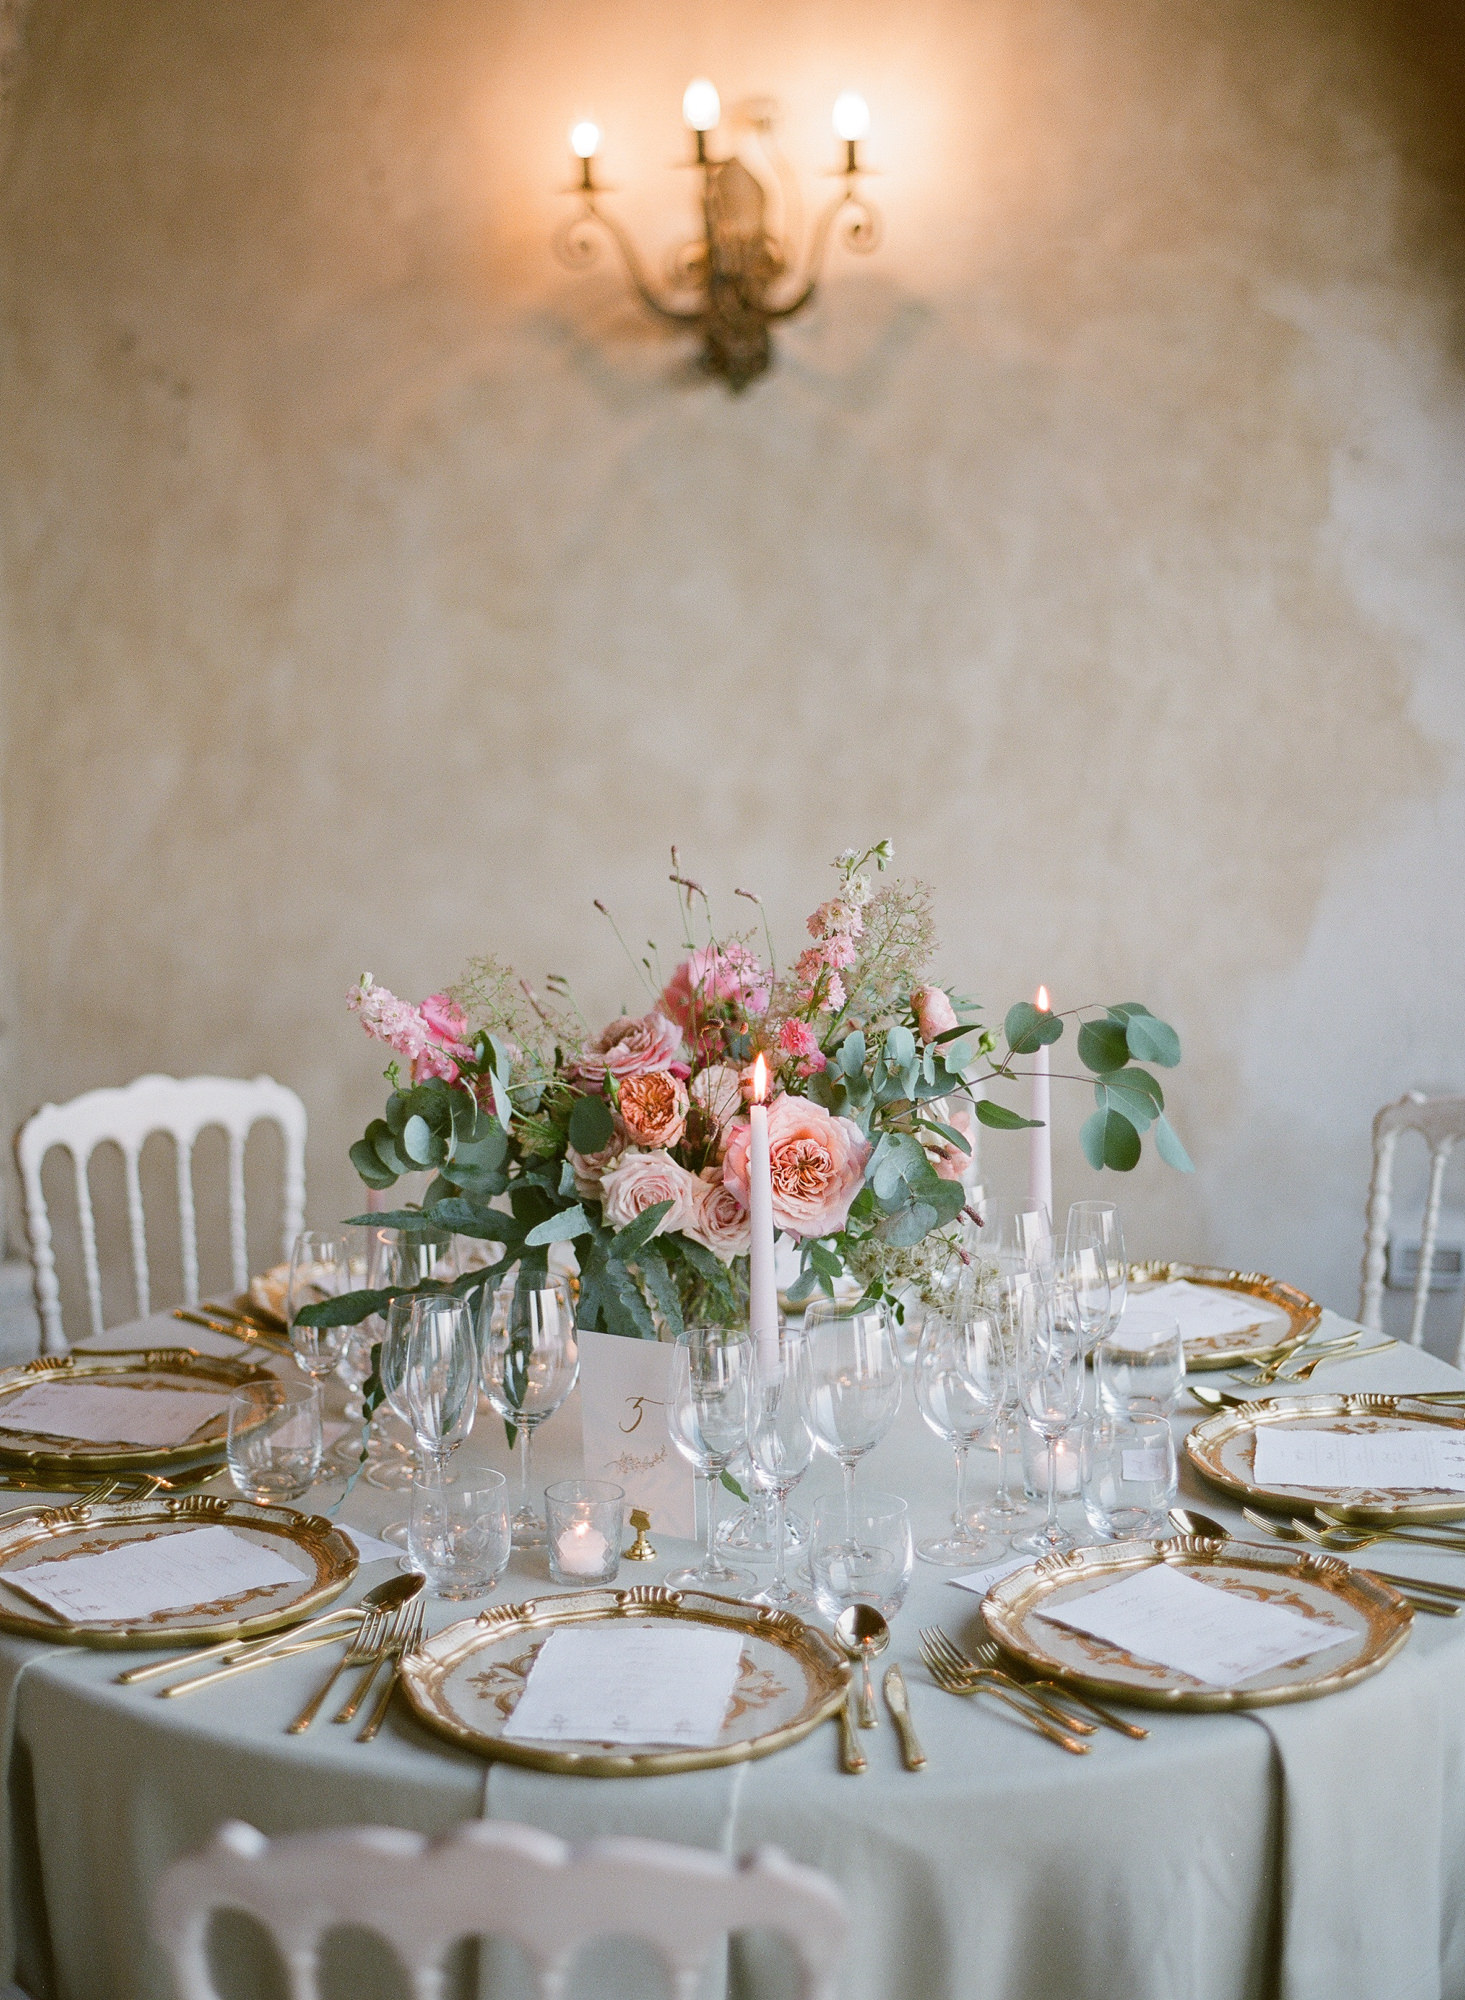 romantic-table-setting-gold-italian-chargers-pink-apricot-rose-centerpiece-worlds-best-wedding-photos-gianluca-adiovaso-italy-wedding-photographers